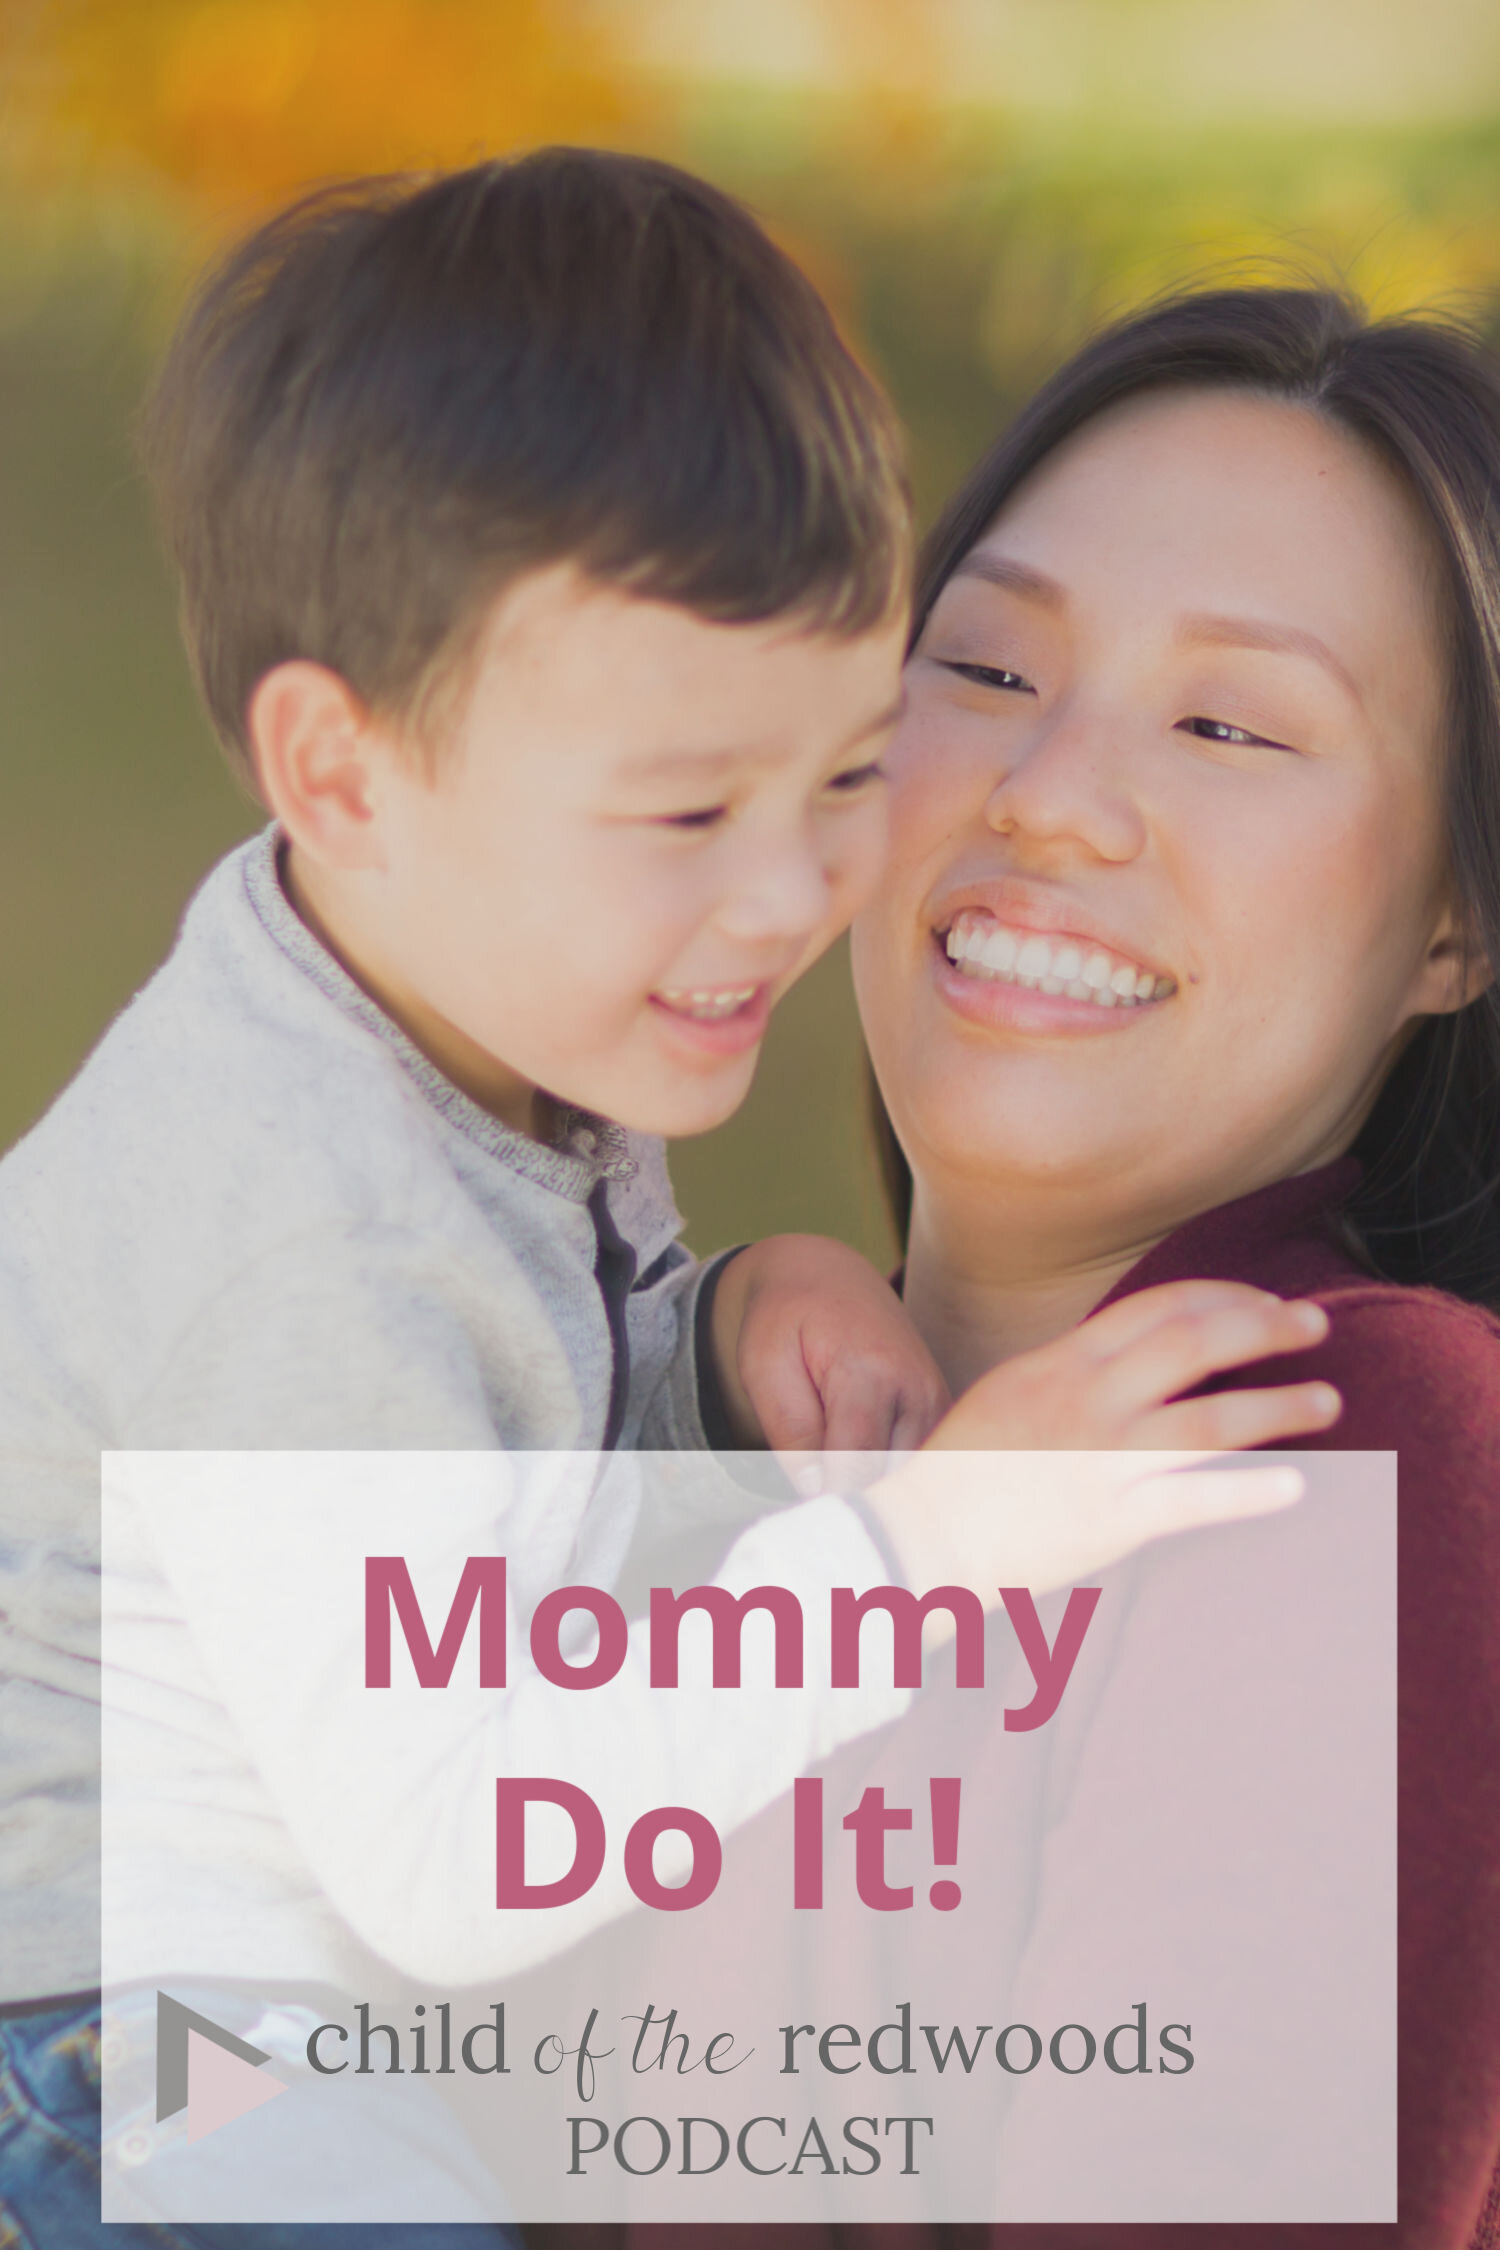 Mommy Do It! Podcast by Child of the Redwoods